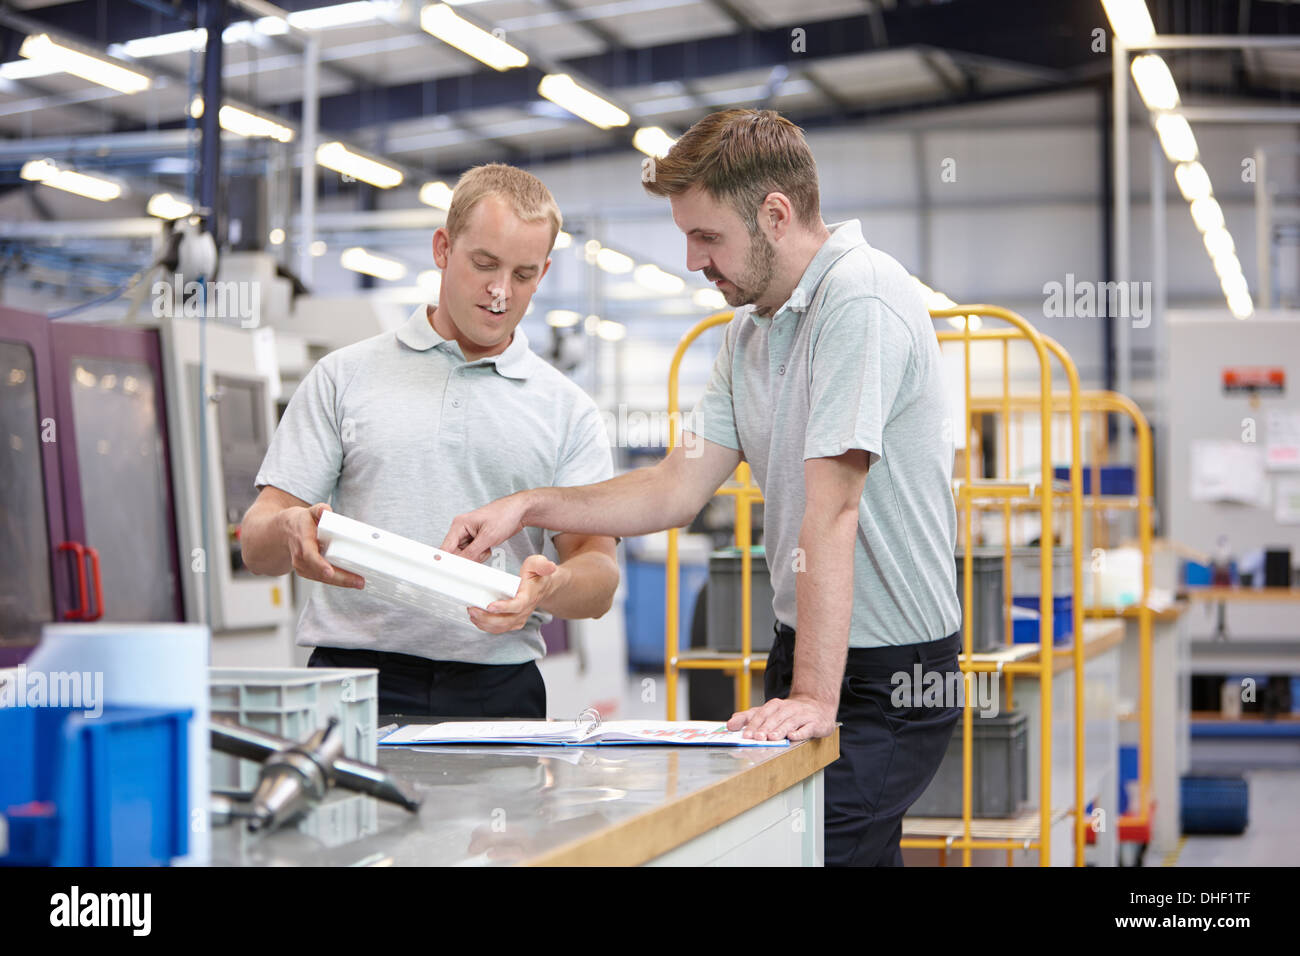 Workers discussing component in engineering factory - Stock Image